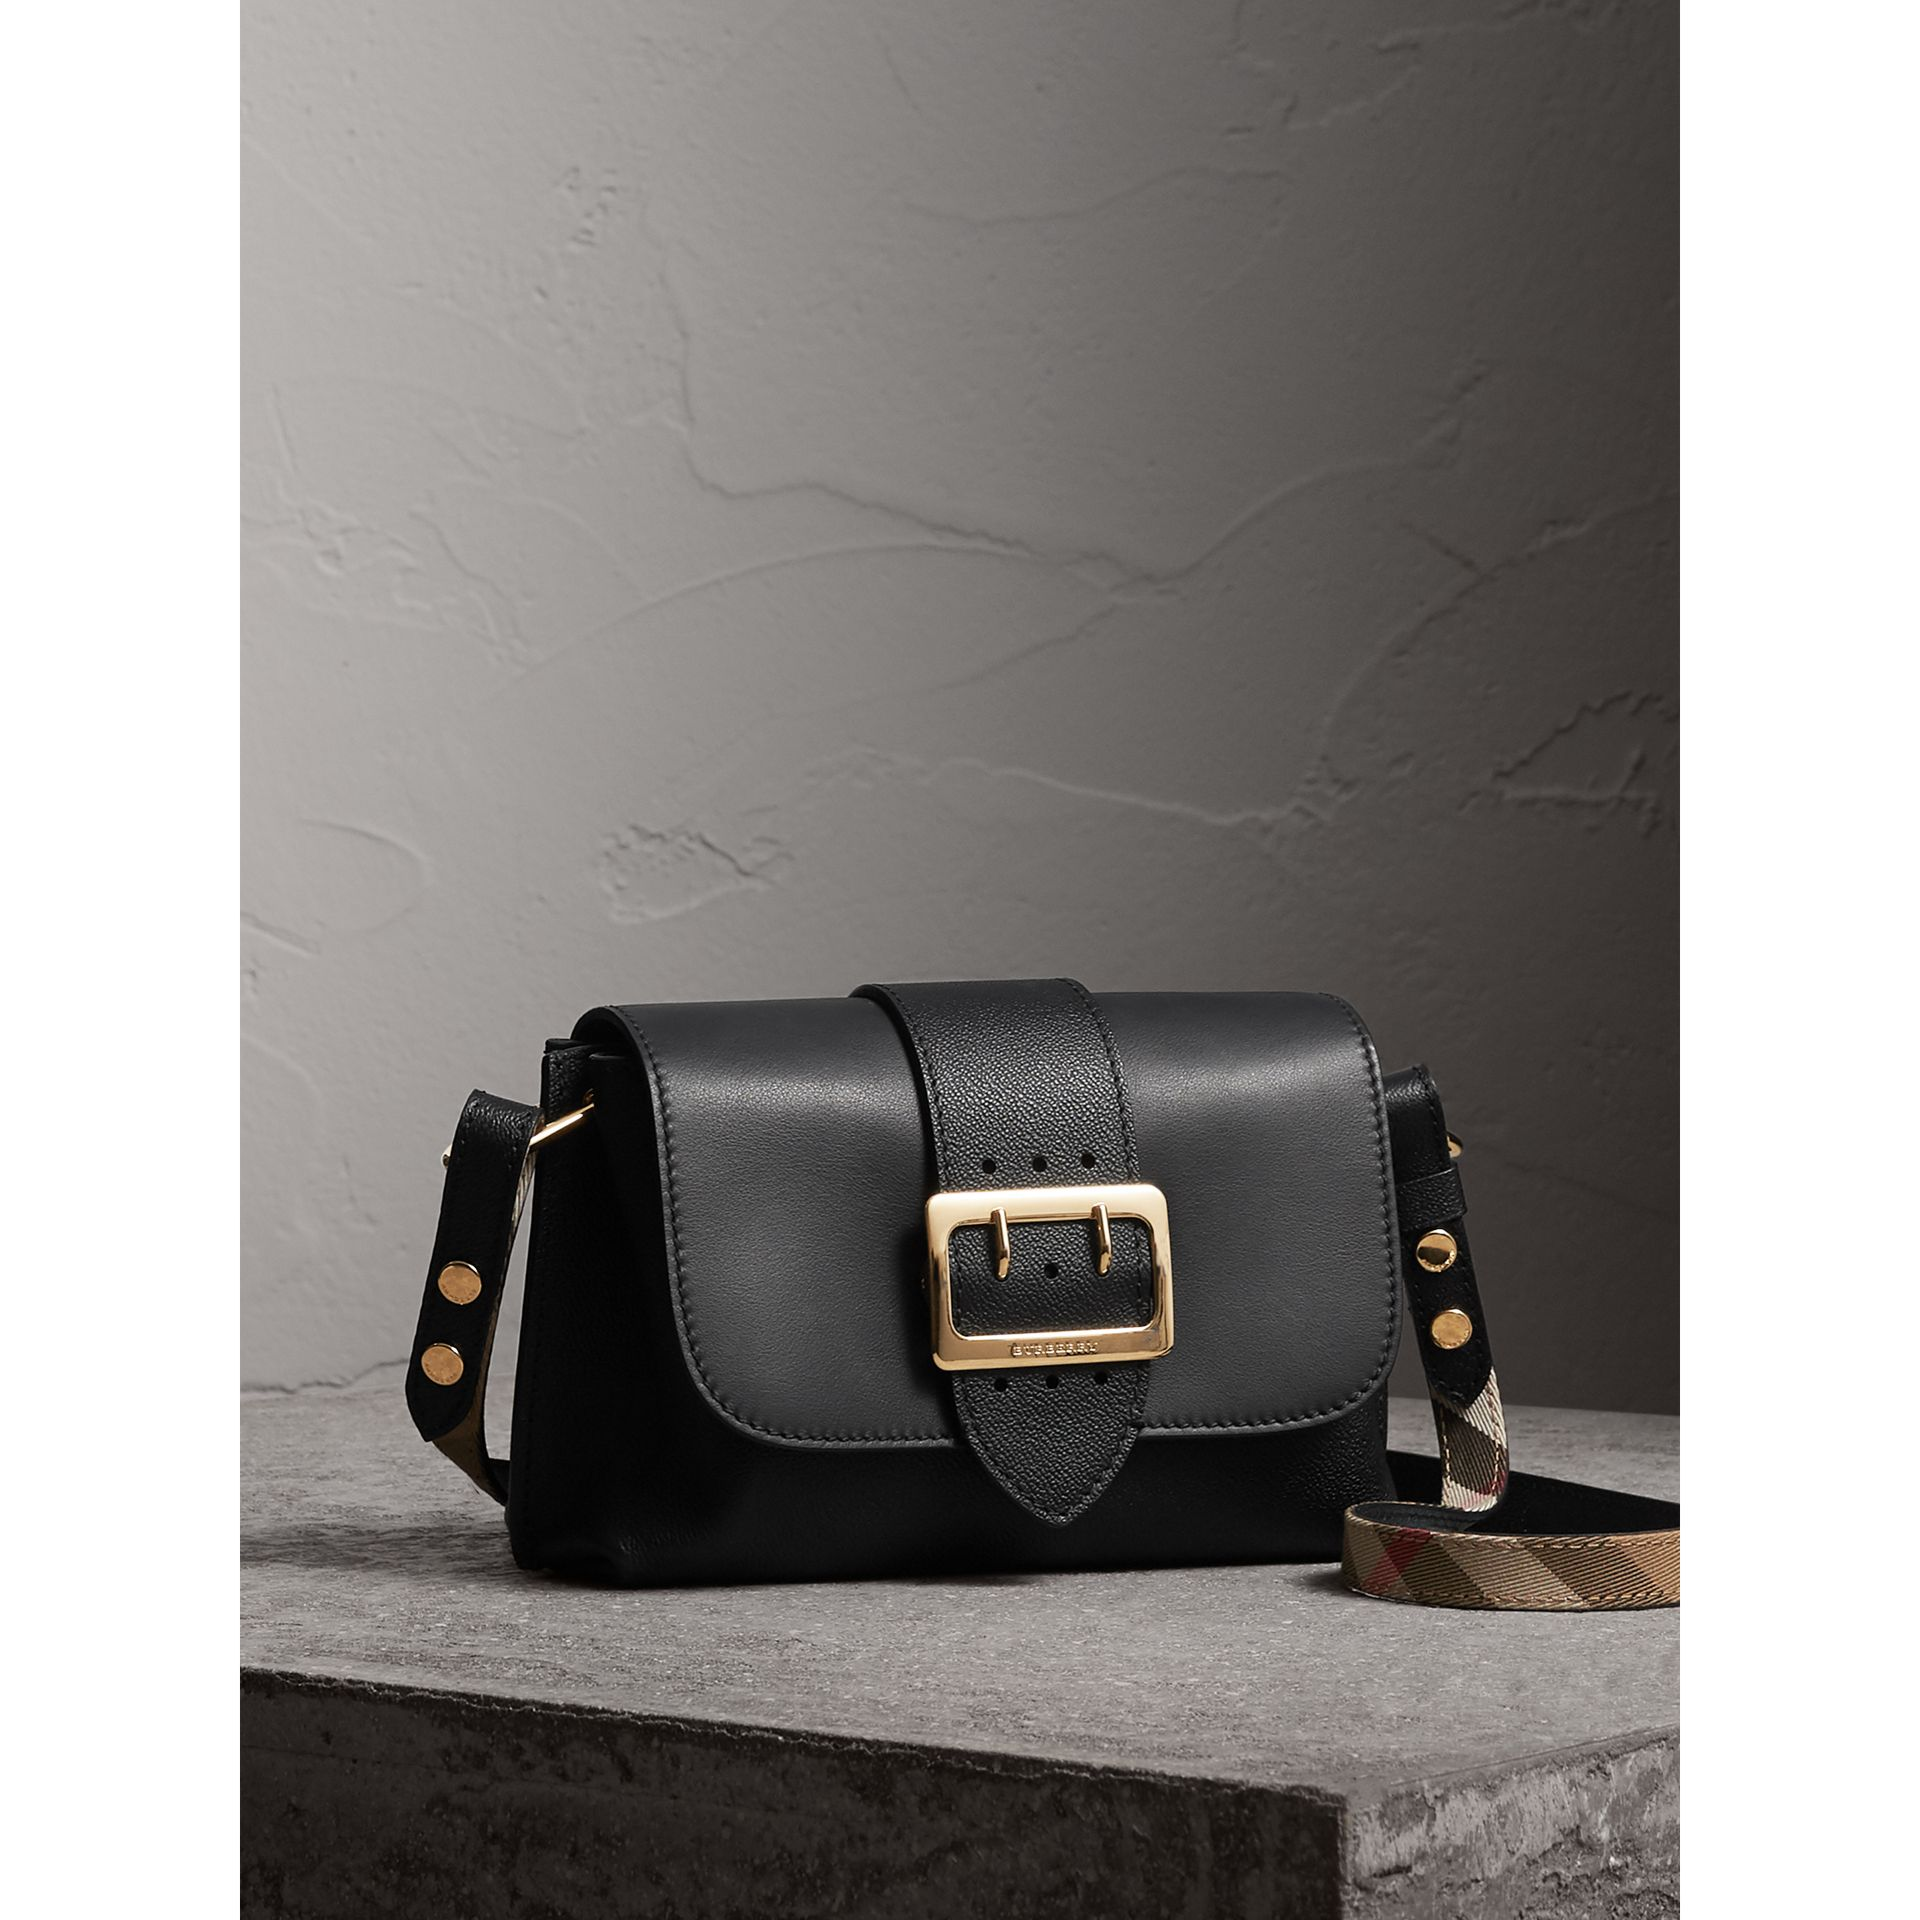 Burberry Flat Stud Detail Crossbody Bag